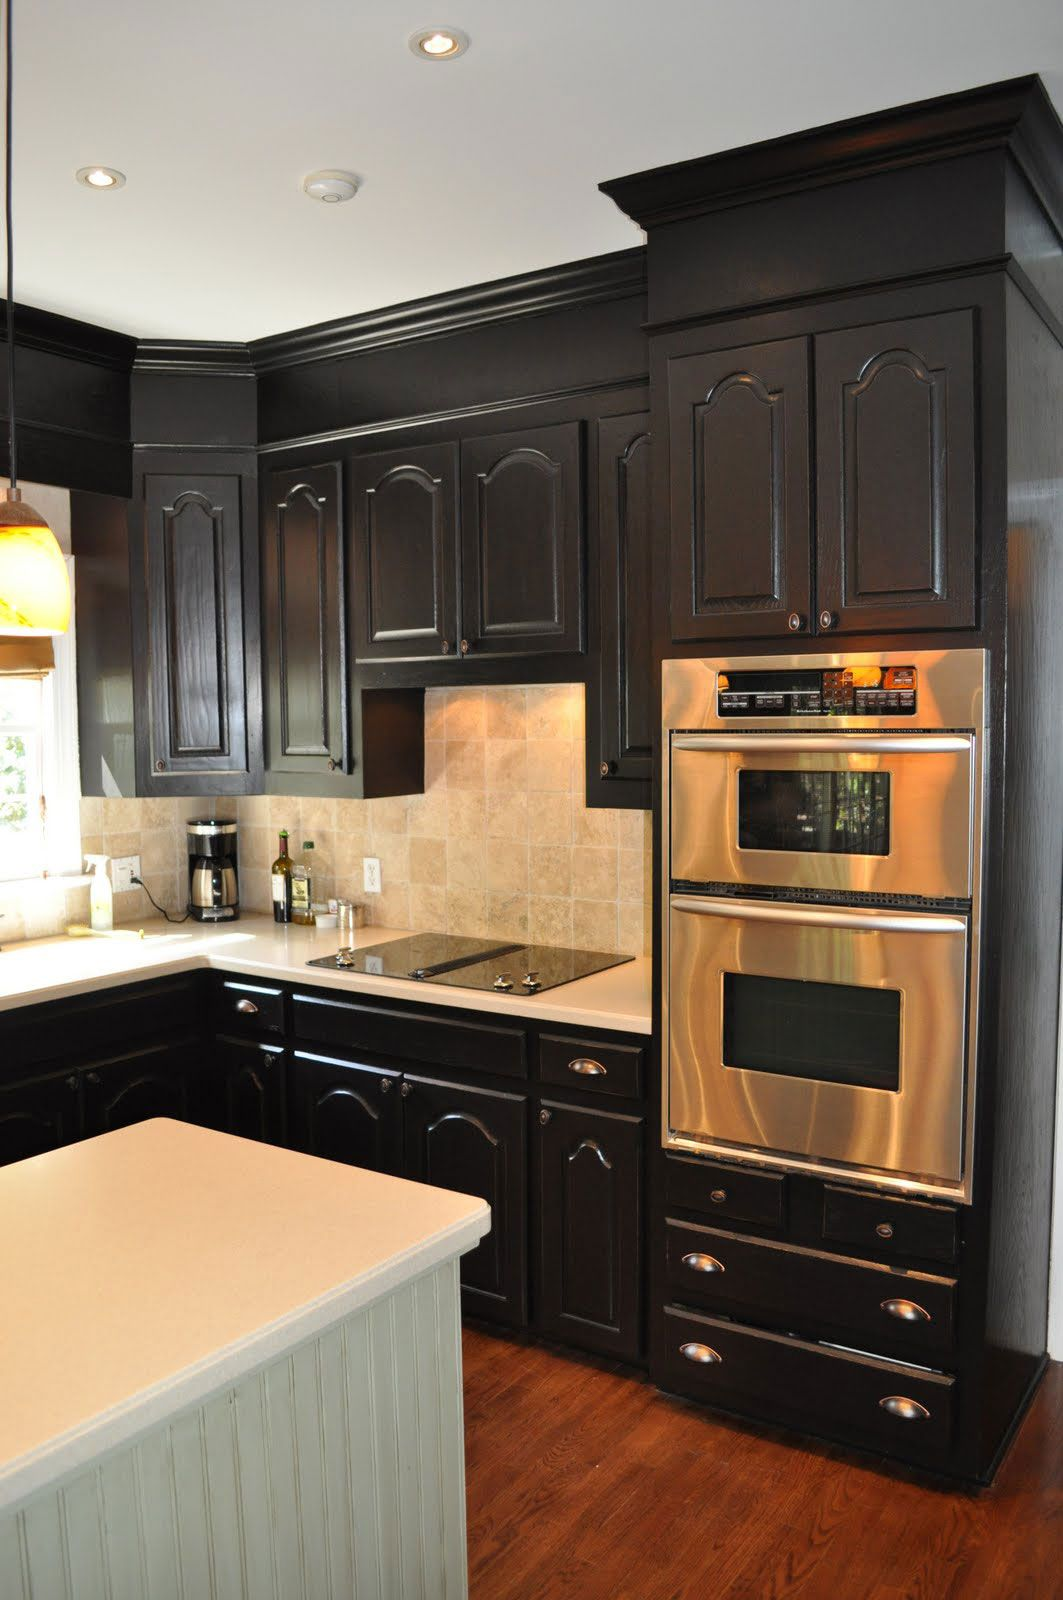 Charmant Contemporary Small Kitchen Design Black Wooden Kitchen Cabinet